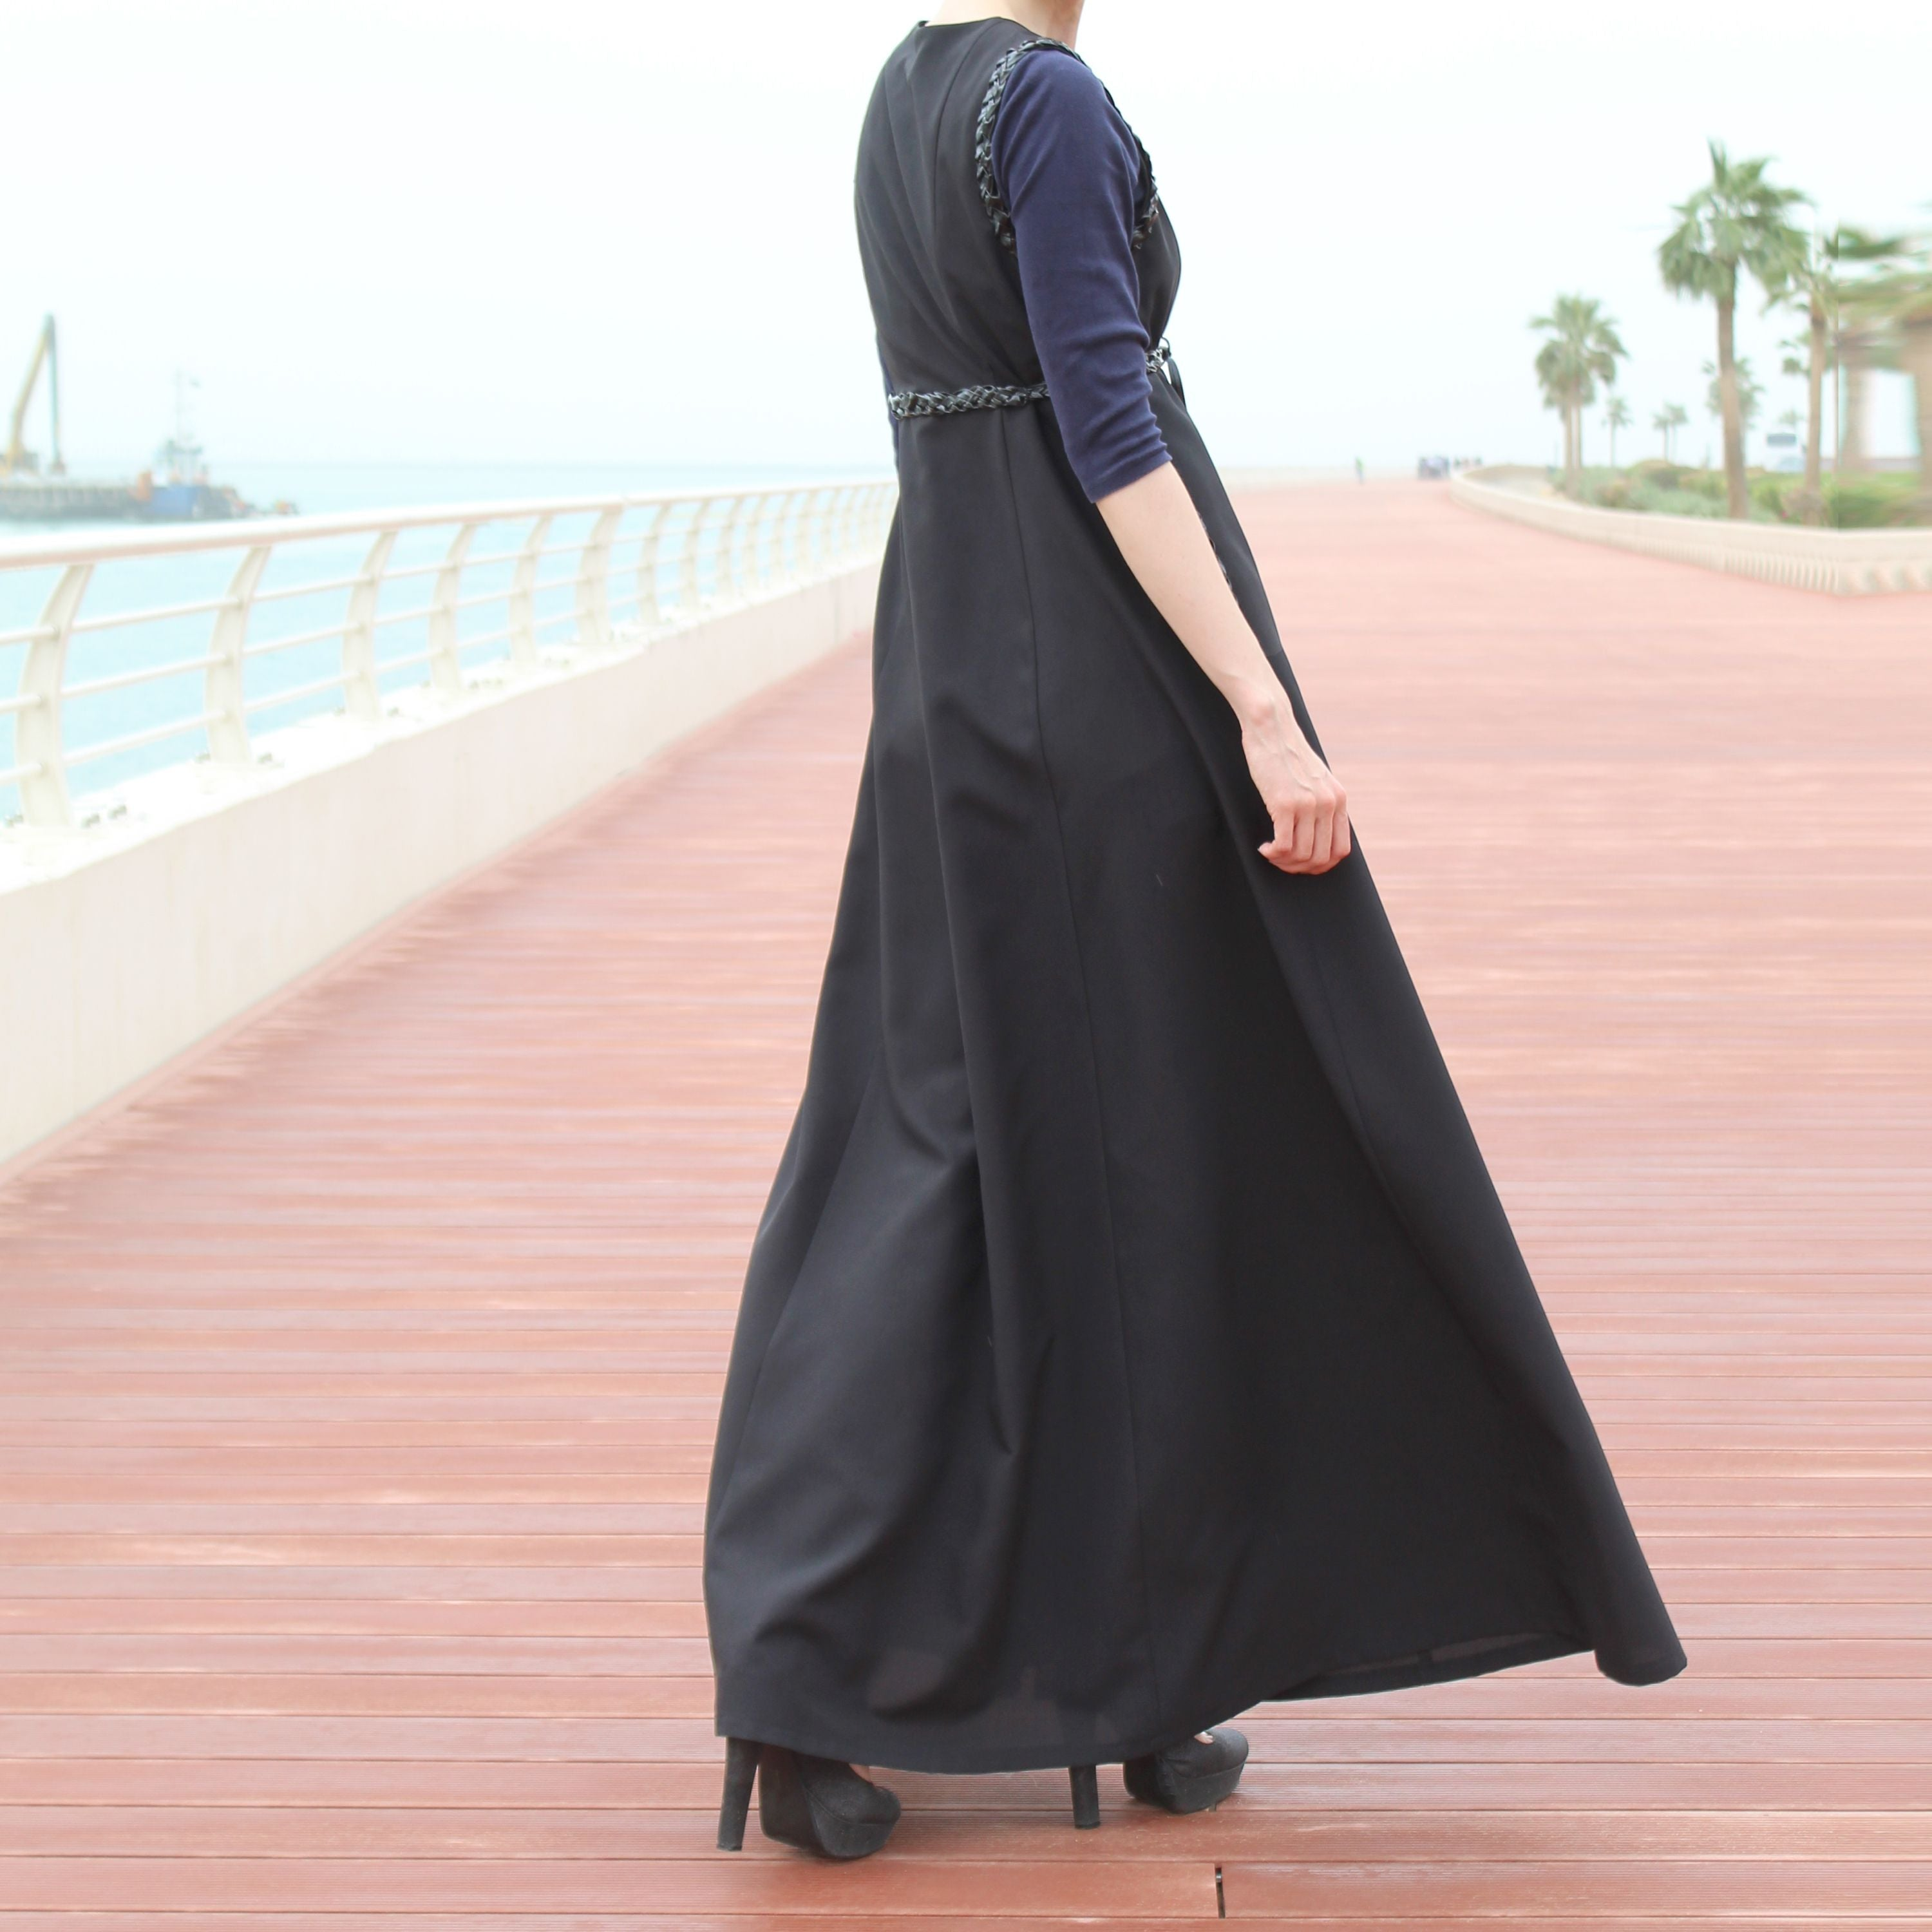 Pockets and Braided Decor at Waist and Shoulders  Loose Long Sleeveless Jacket Black Long Line Sleeveless Vest Jacket with Belt